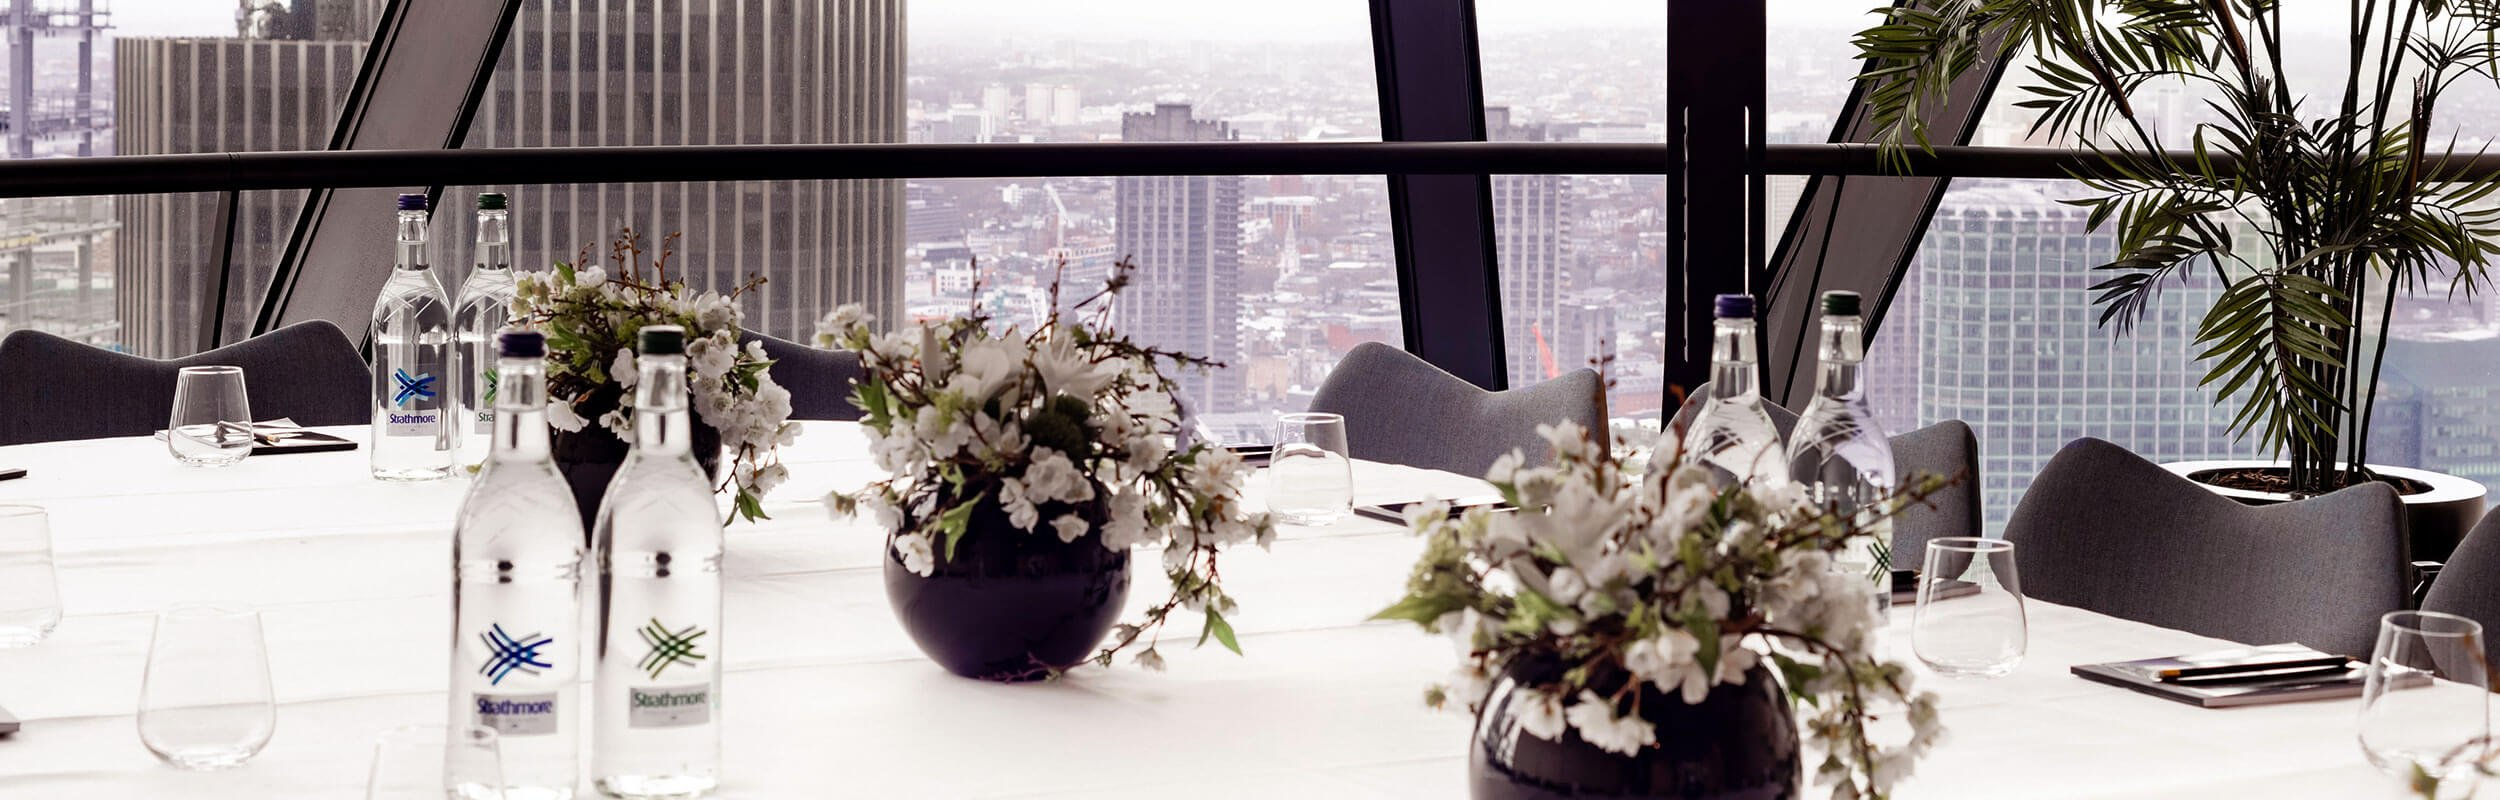 Meeting Rooms - Searcys at the Gherkin